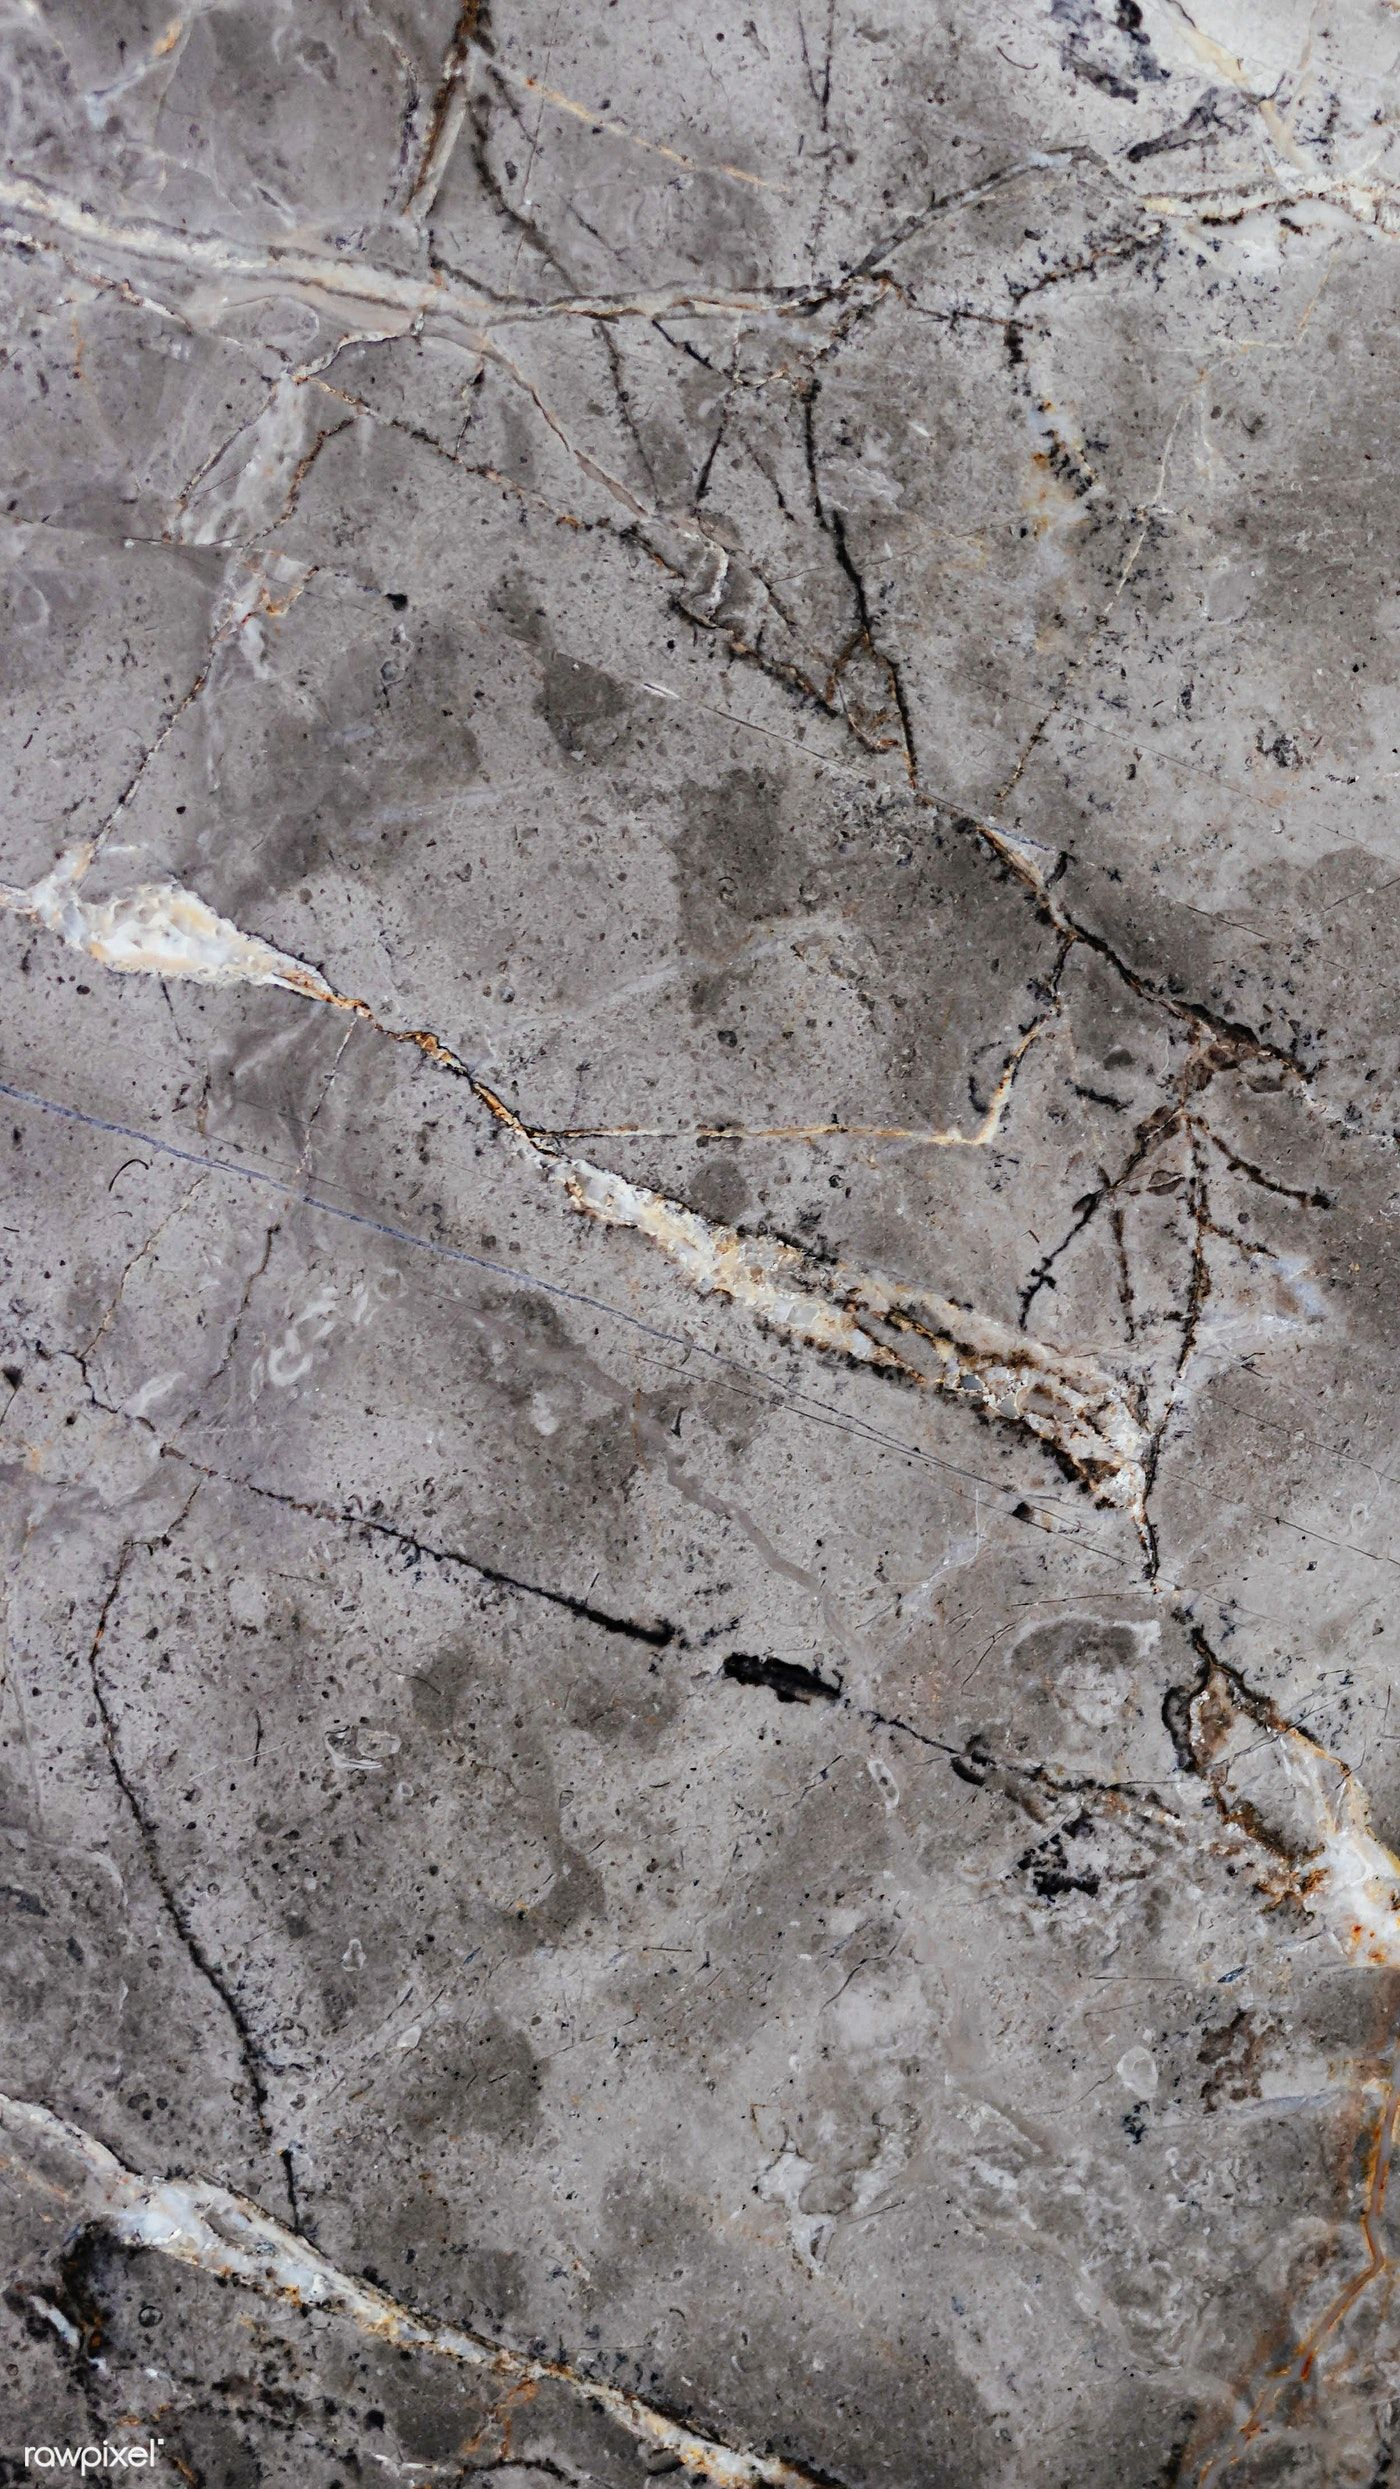 Download premium image of Rough gray marble texture with streaks mobile